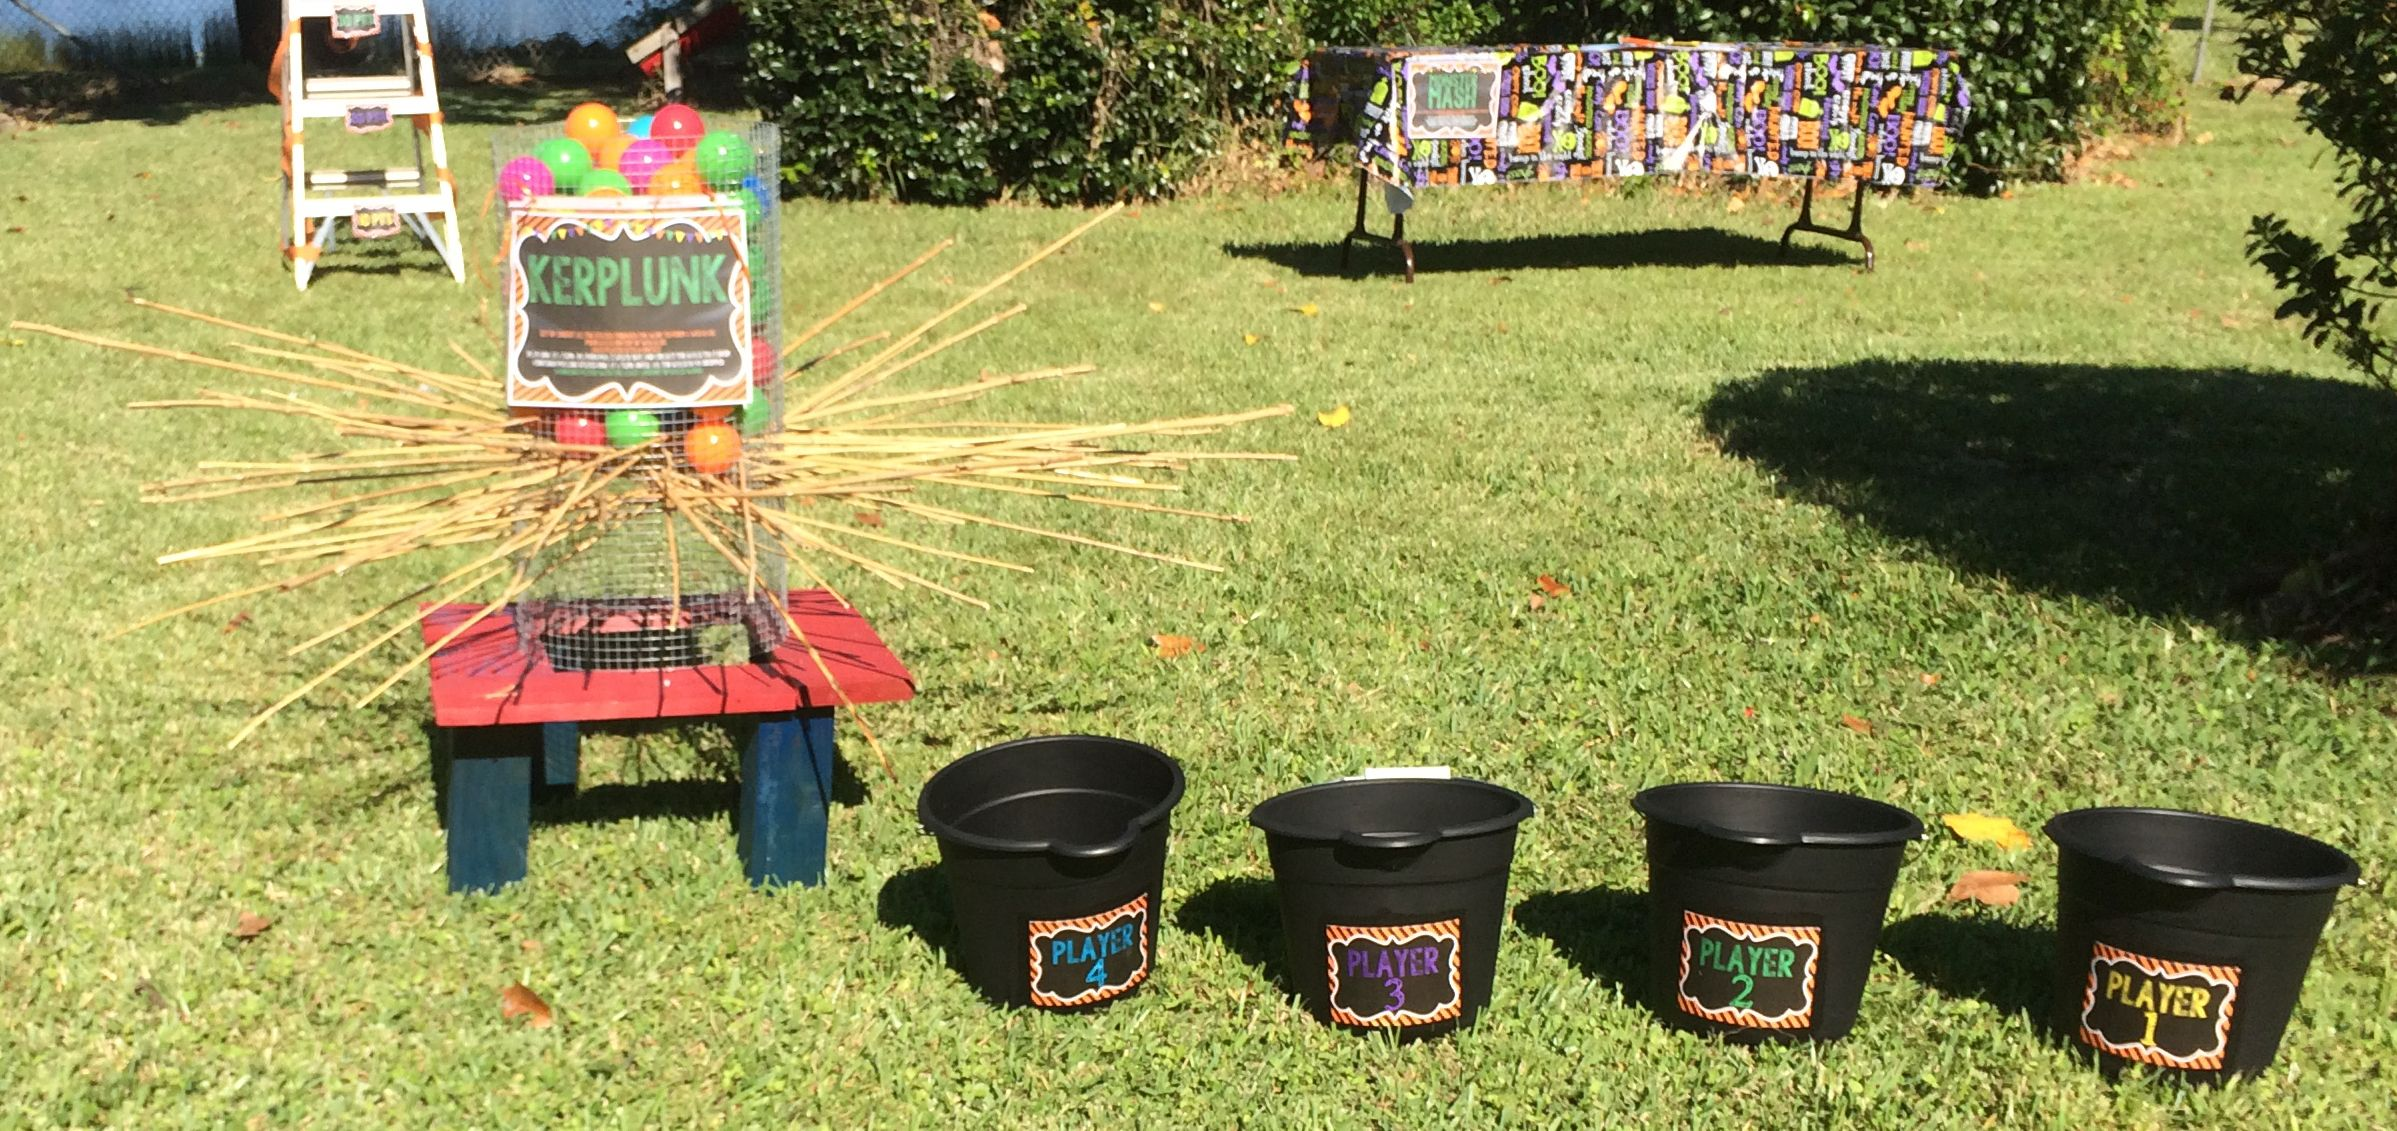 kerplunk fun game used bamboo sticks black buckets are from